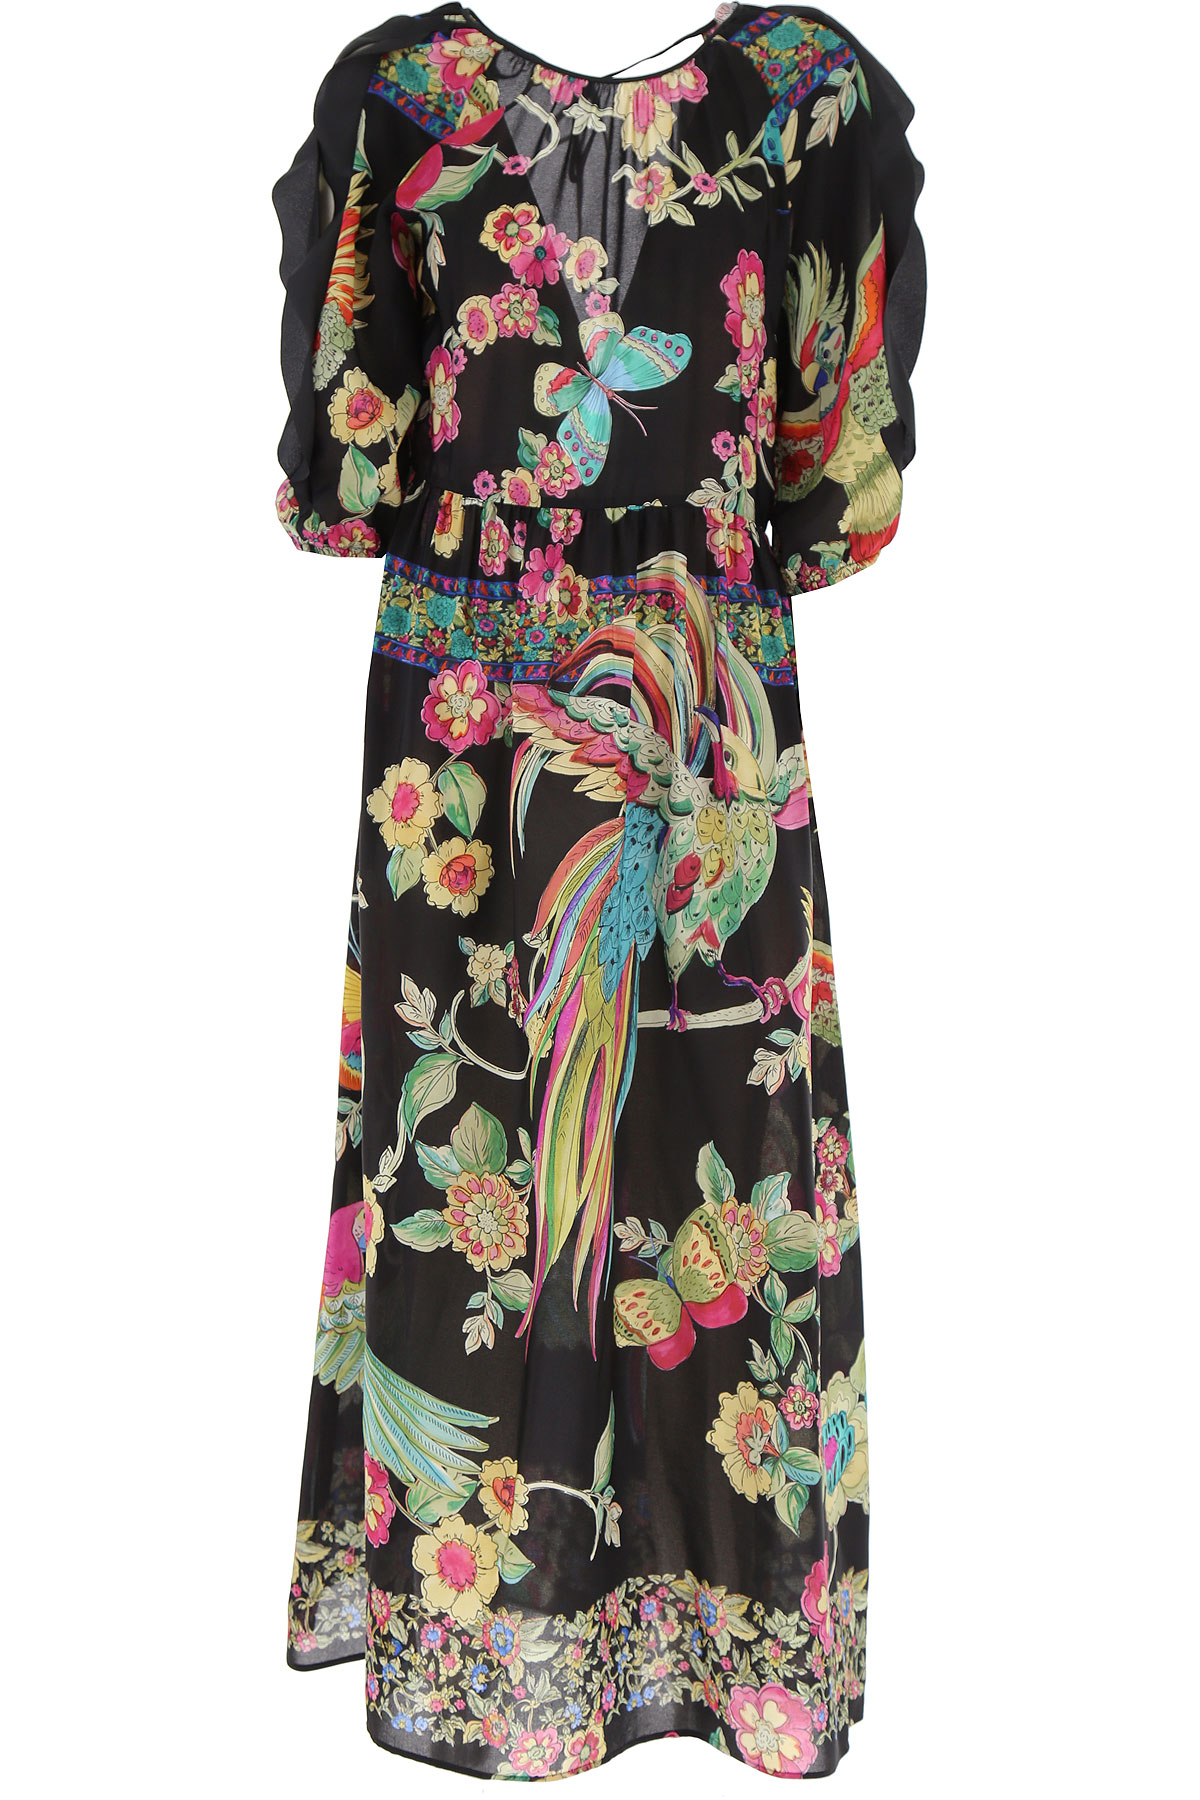 RED Valentino Dress for Women, Evening Cocktail Party On Sale, Black, polyester, 2019, 2 4 6